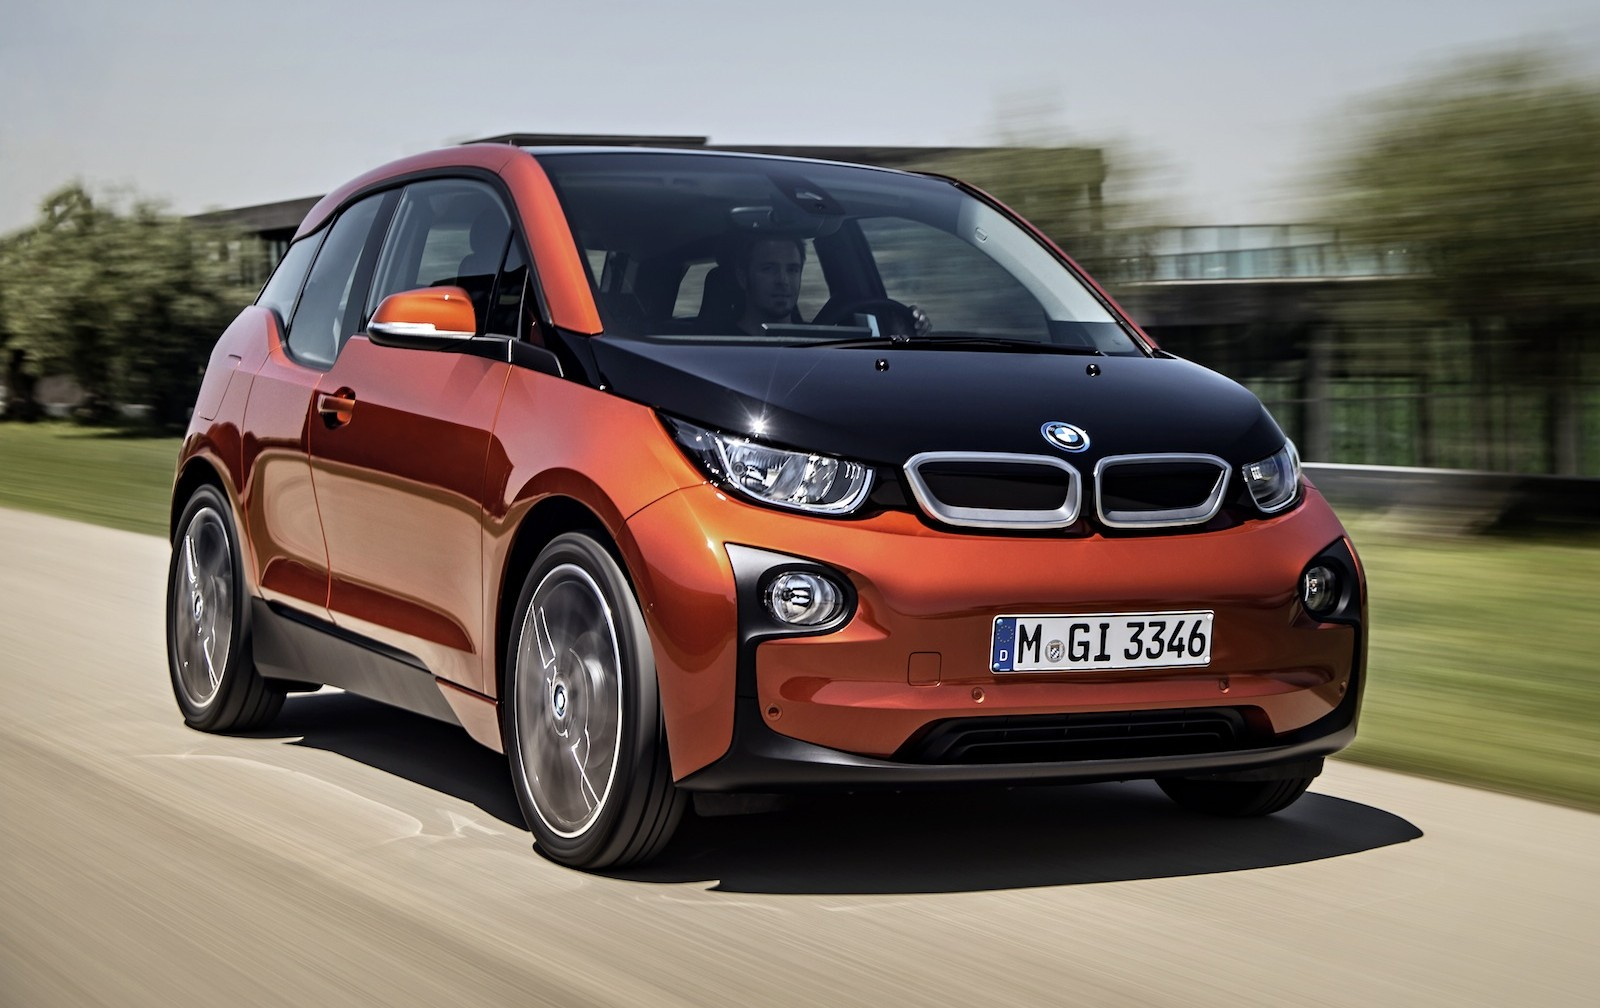 Is the BMW i3 EV better than the Tesla Model S?